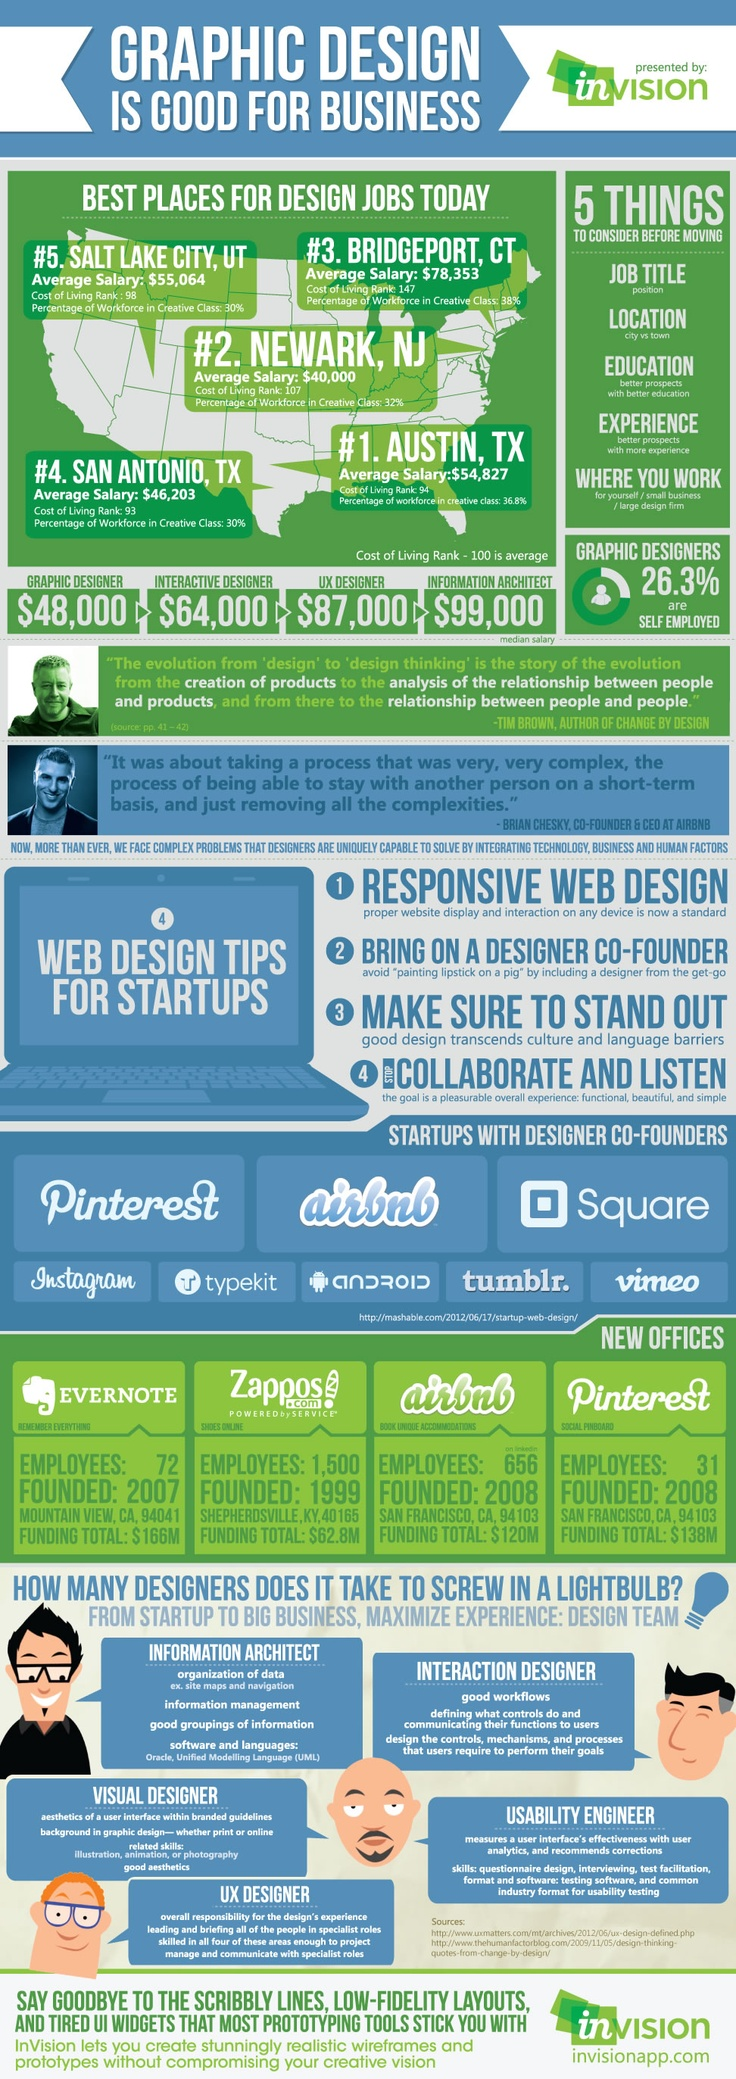 22 best Graphic Design images on Pinterest | Info graphics, Graph ...